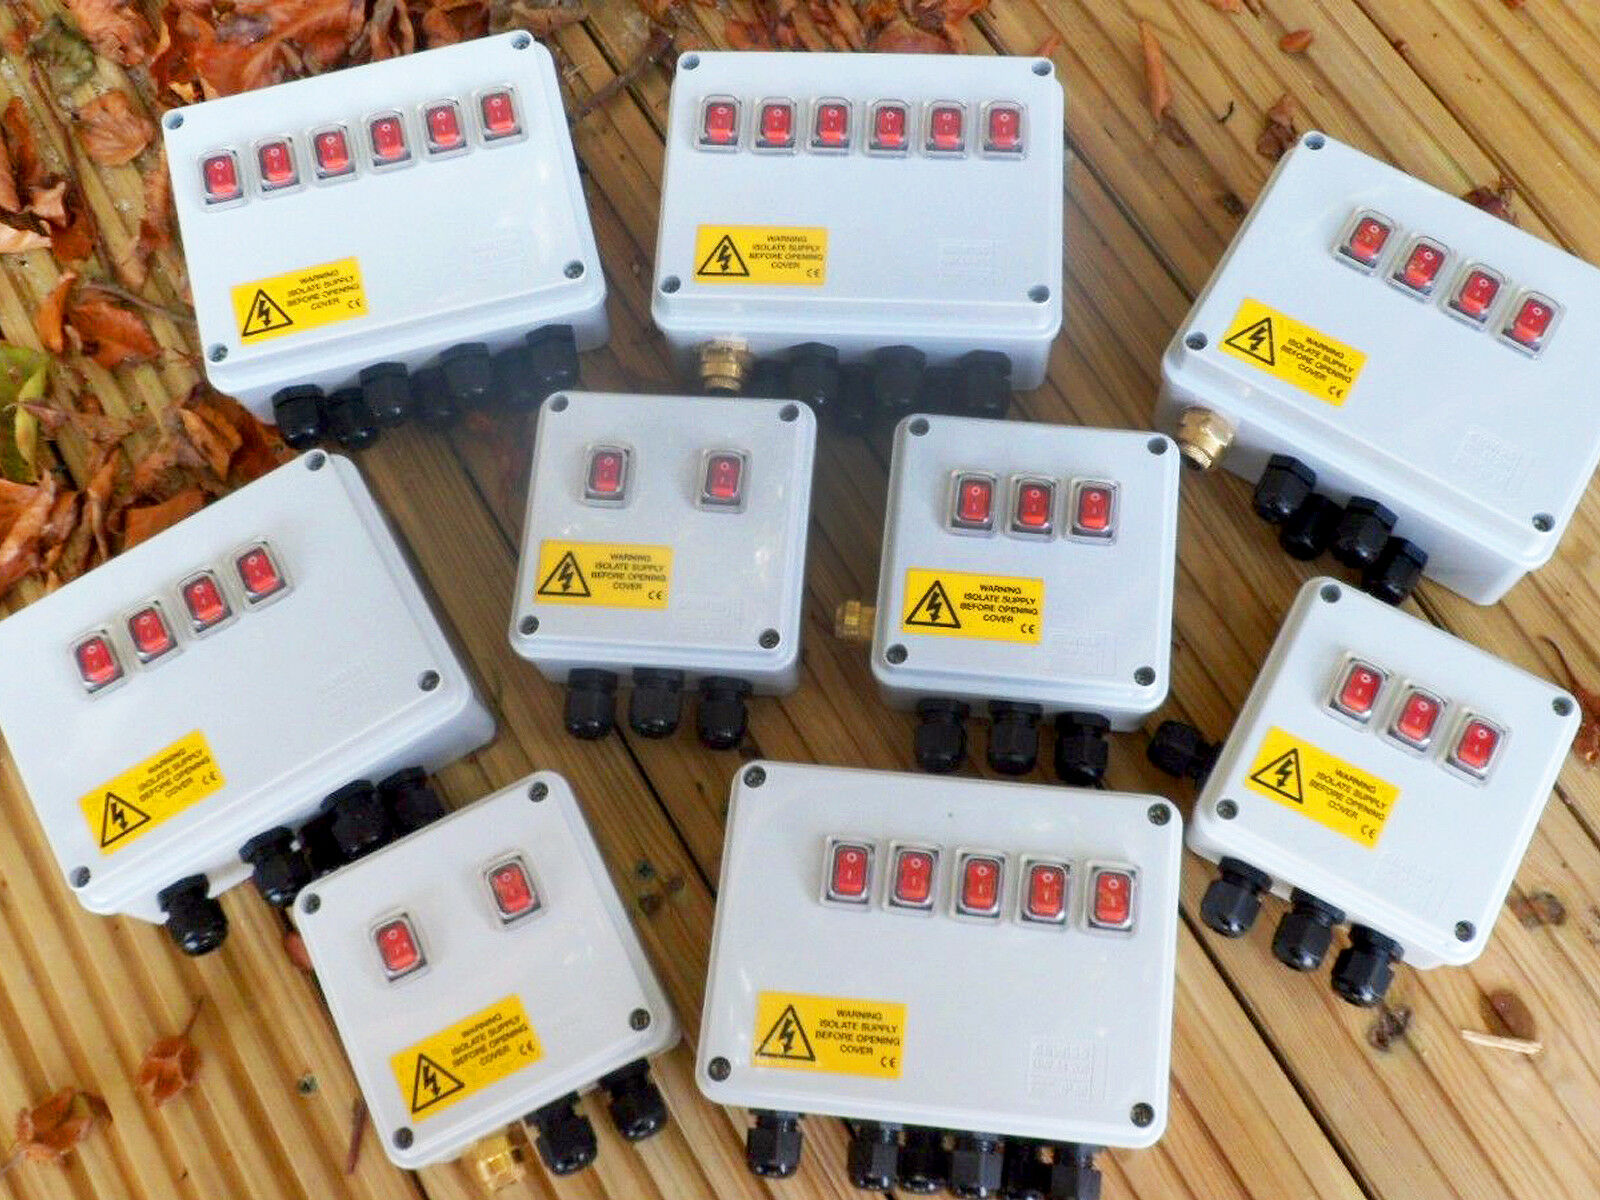 Illuminated Rocker Switch Box For Pond Pumps Filters Etc And How To Hook Up 1 Of 8free Shipping